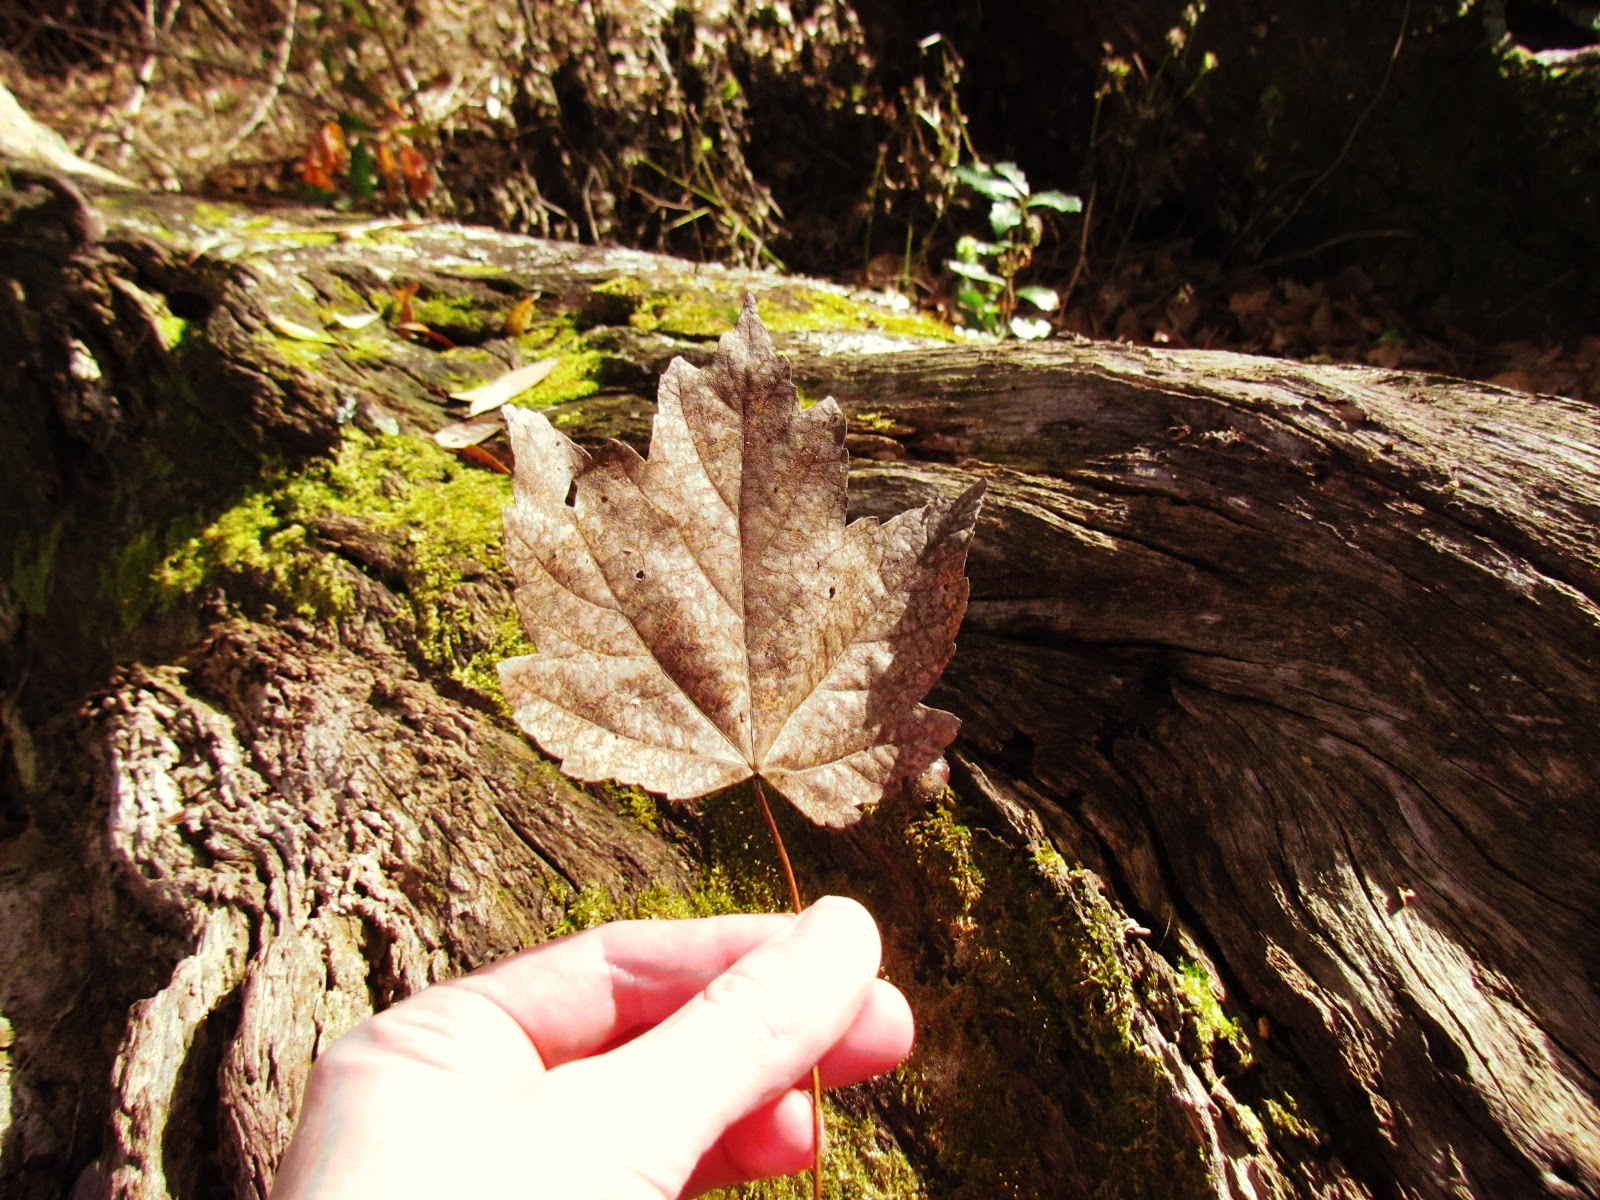 Trending Spots for Leafers to Find Golden Rustic Autumn Leaves